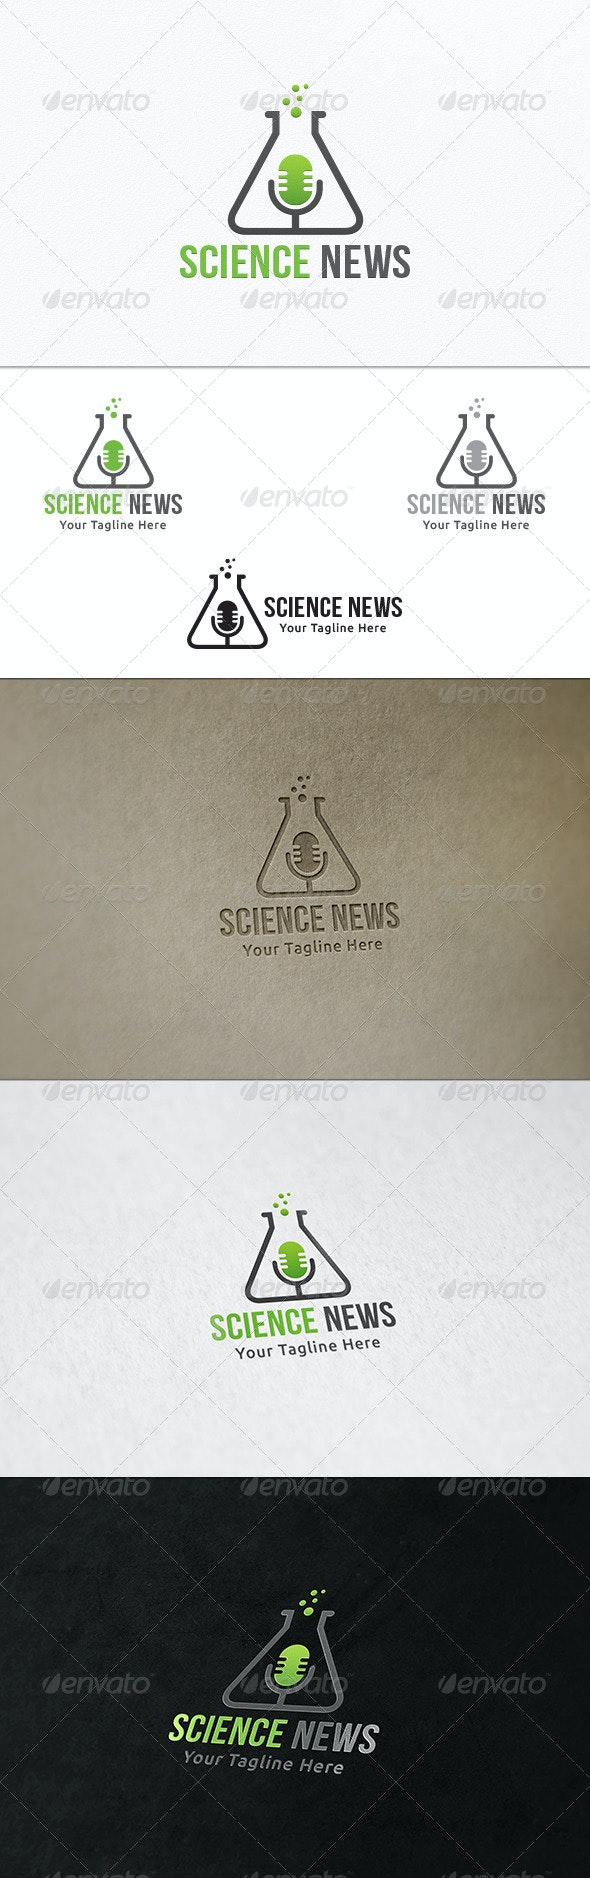 Science News - Logo Template  - Symbols Logo Templates